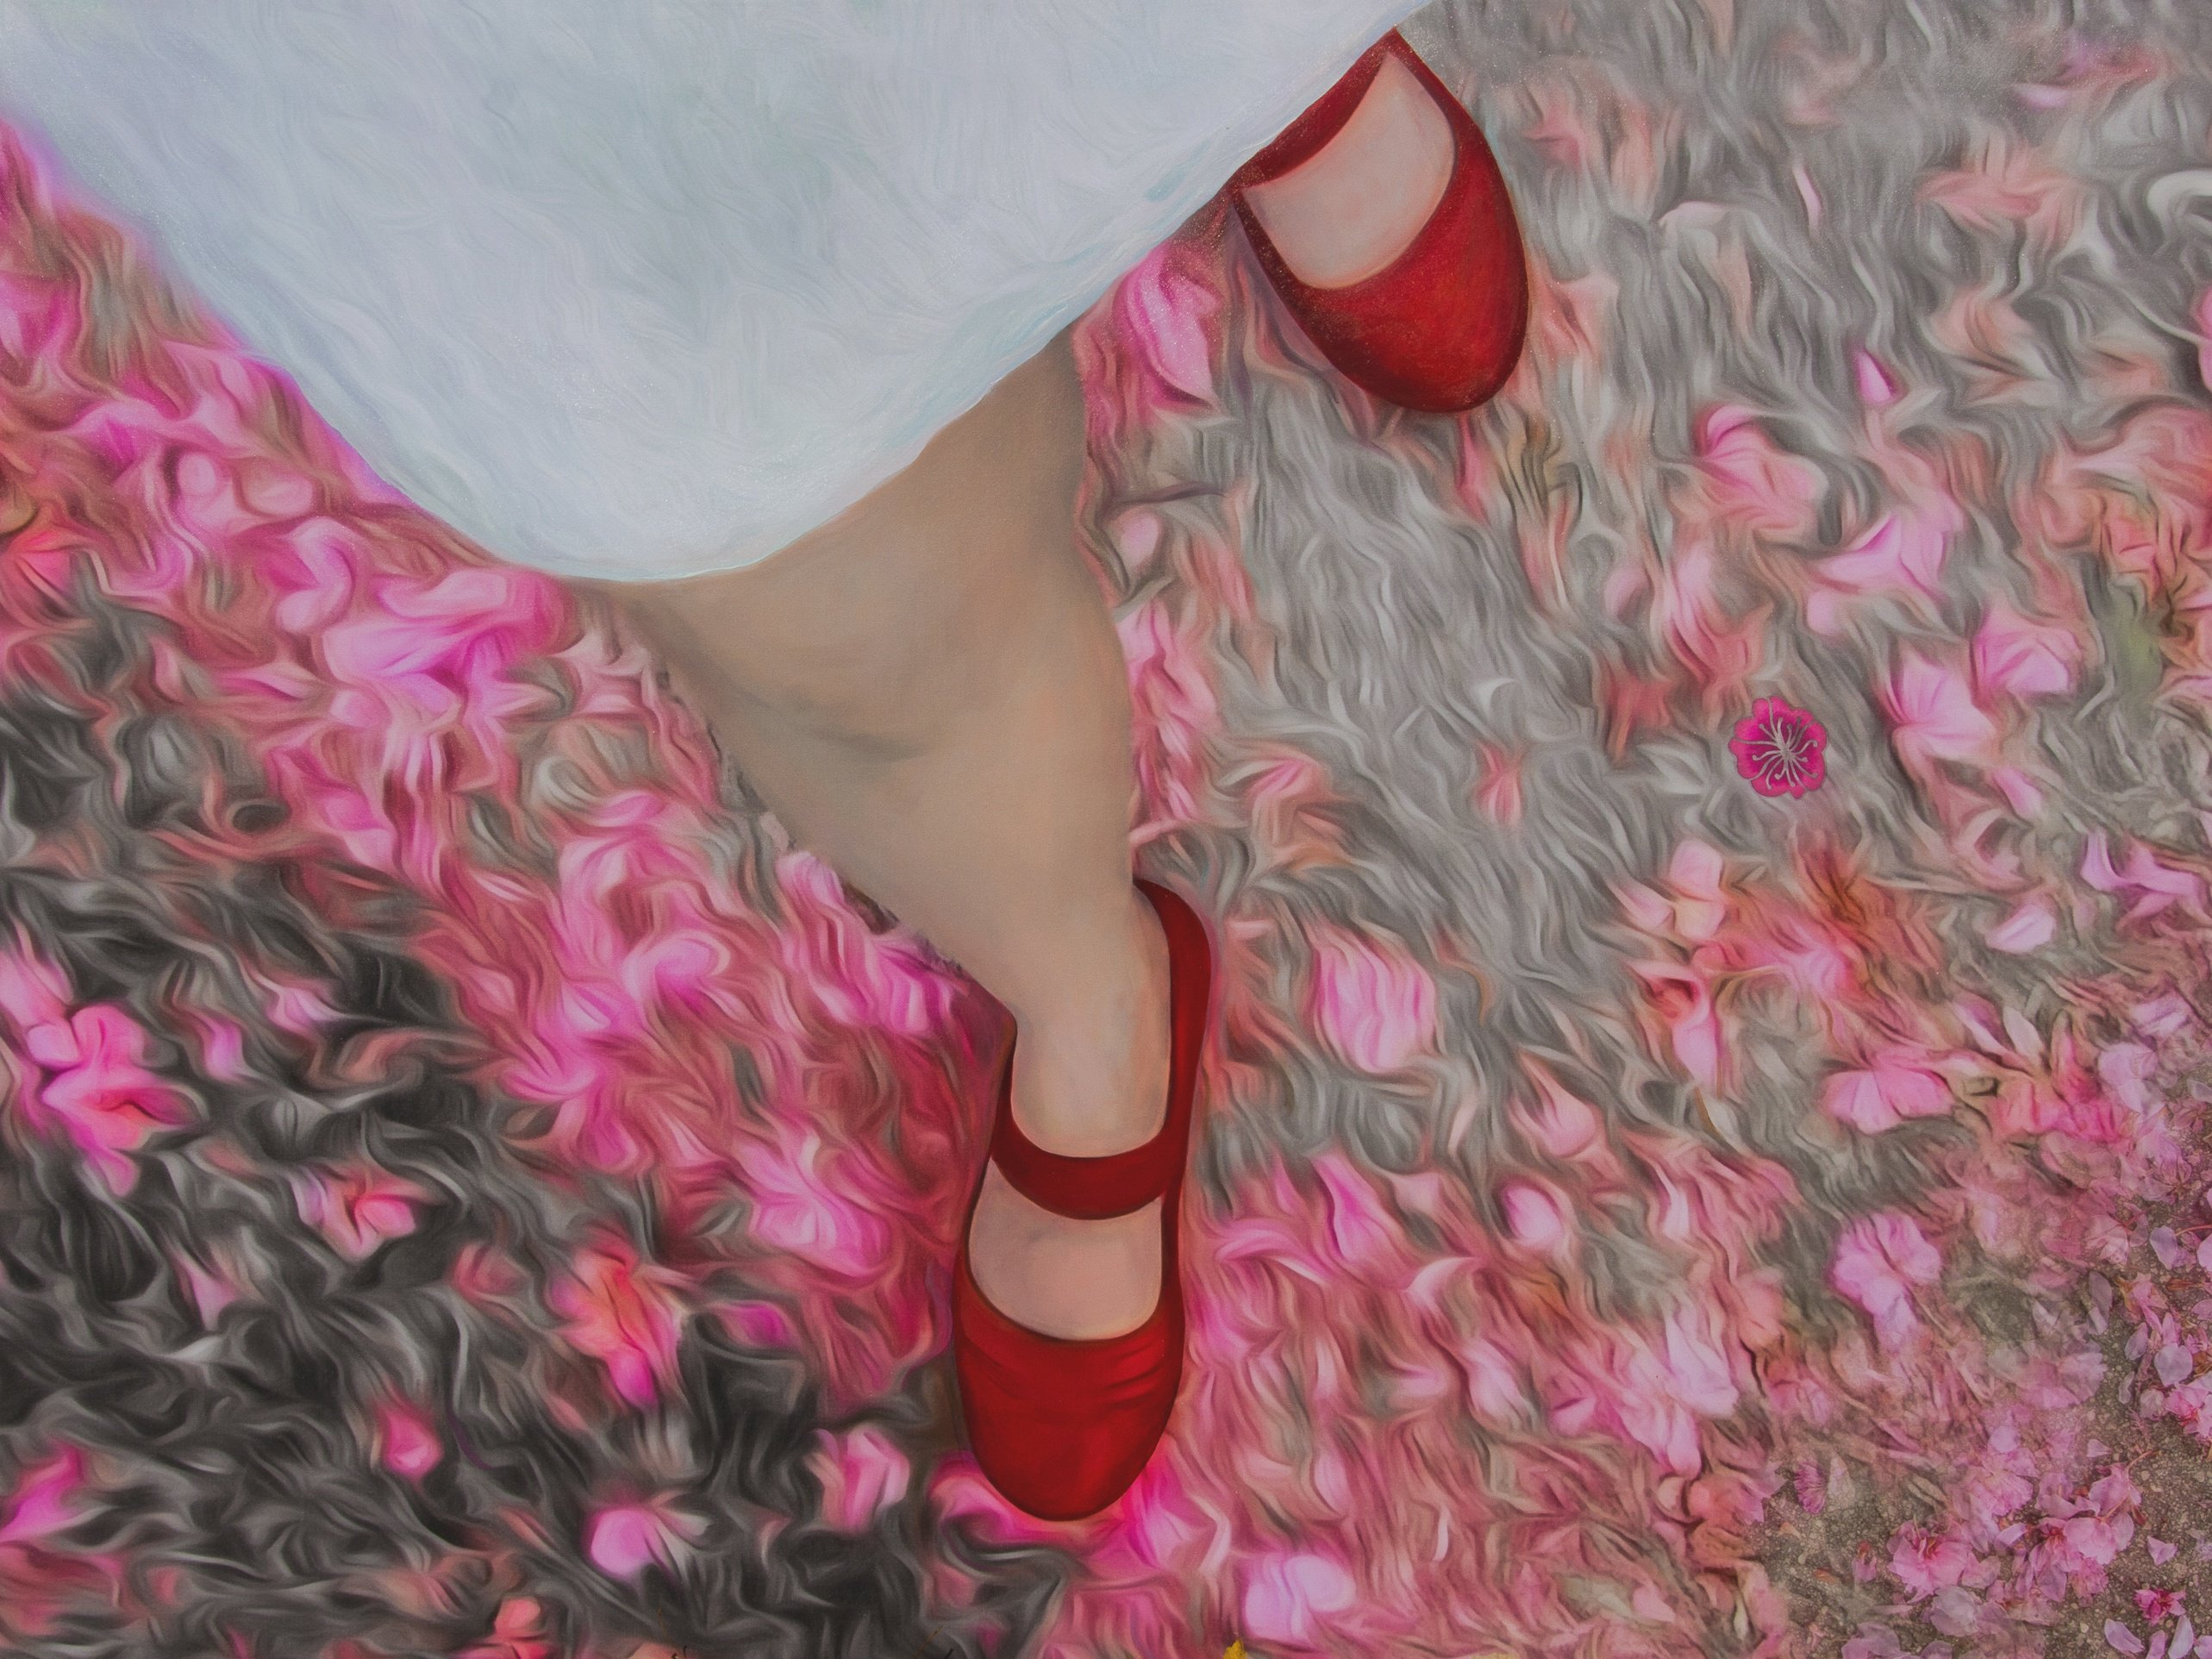 Liliane Blom, Red Shoes, 2016, digital painting on canvas.